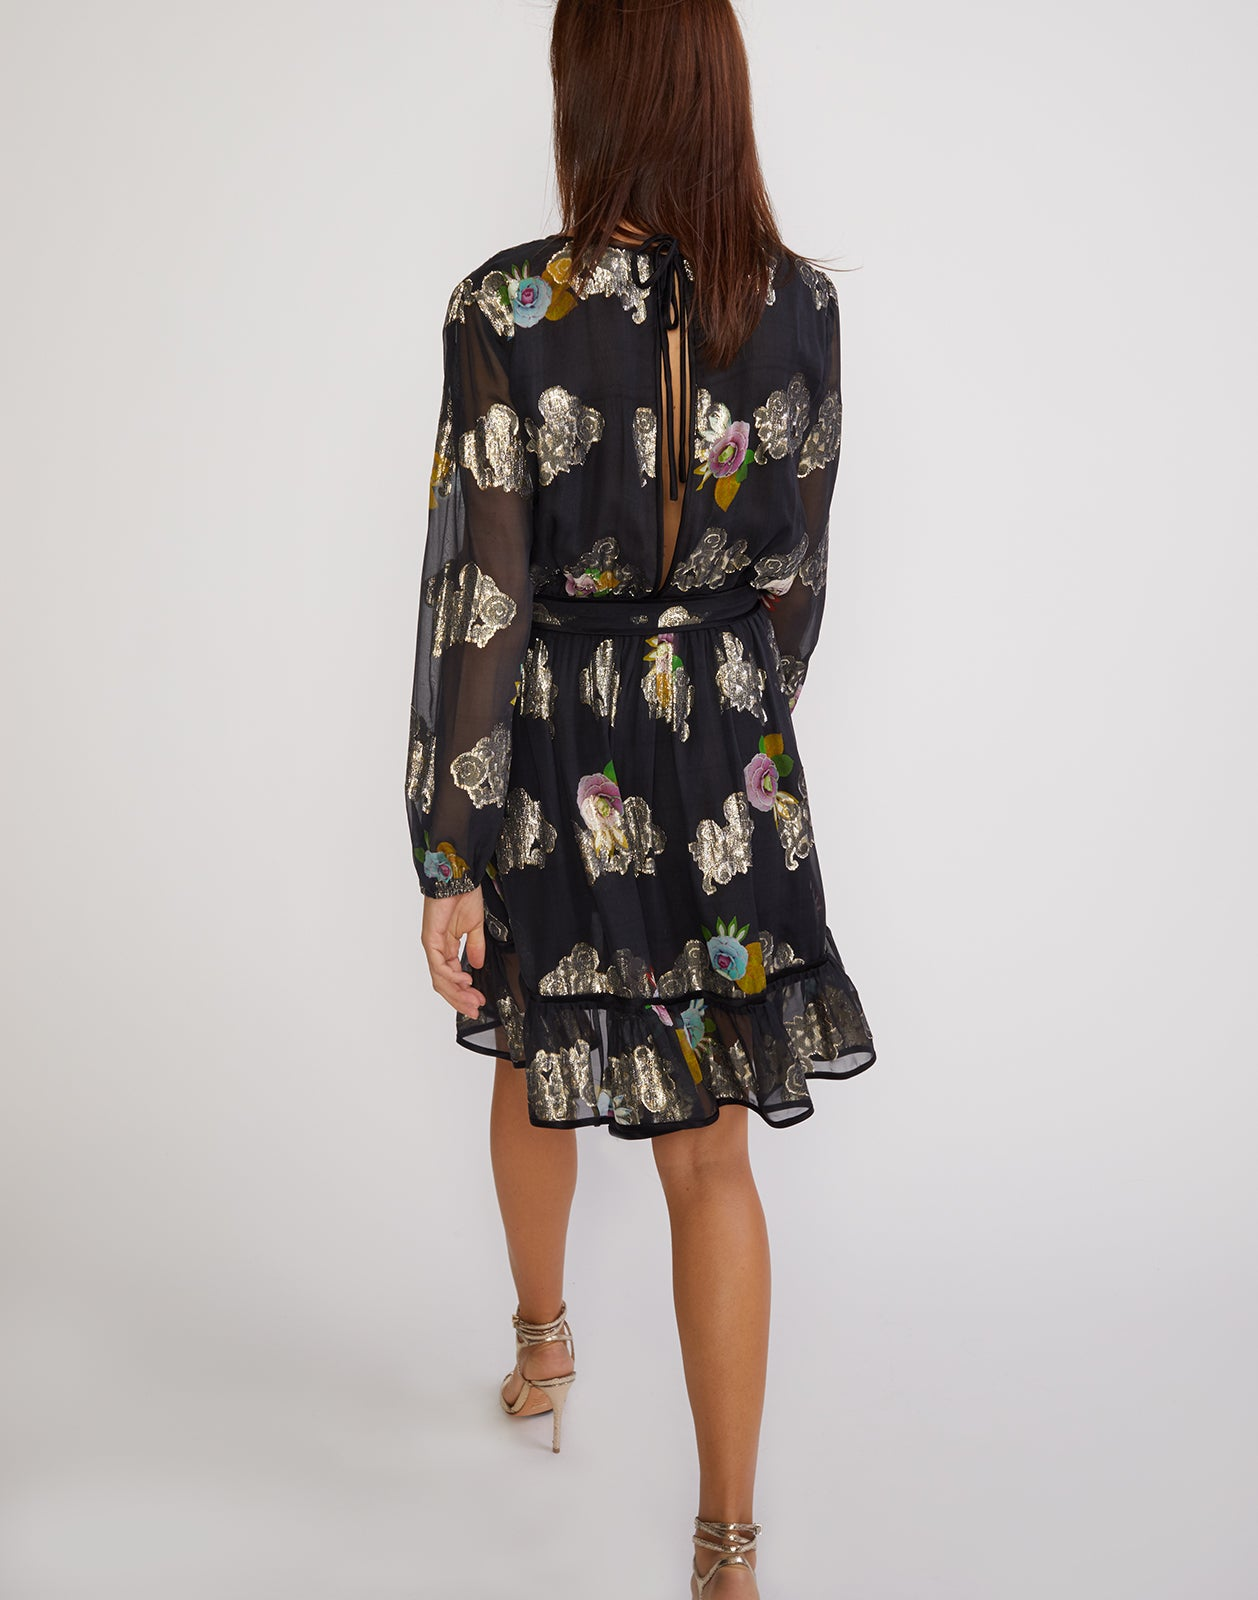 Full back view of the sheer metallic floral print dress with ruffle flounce bottom